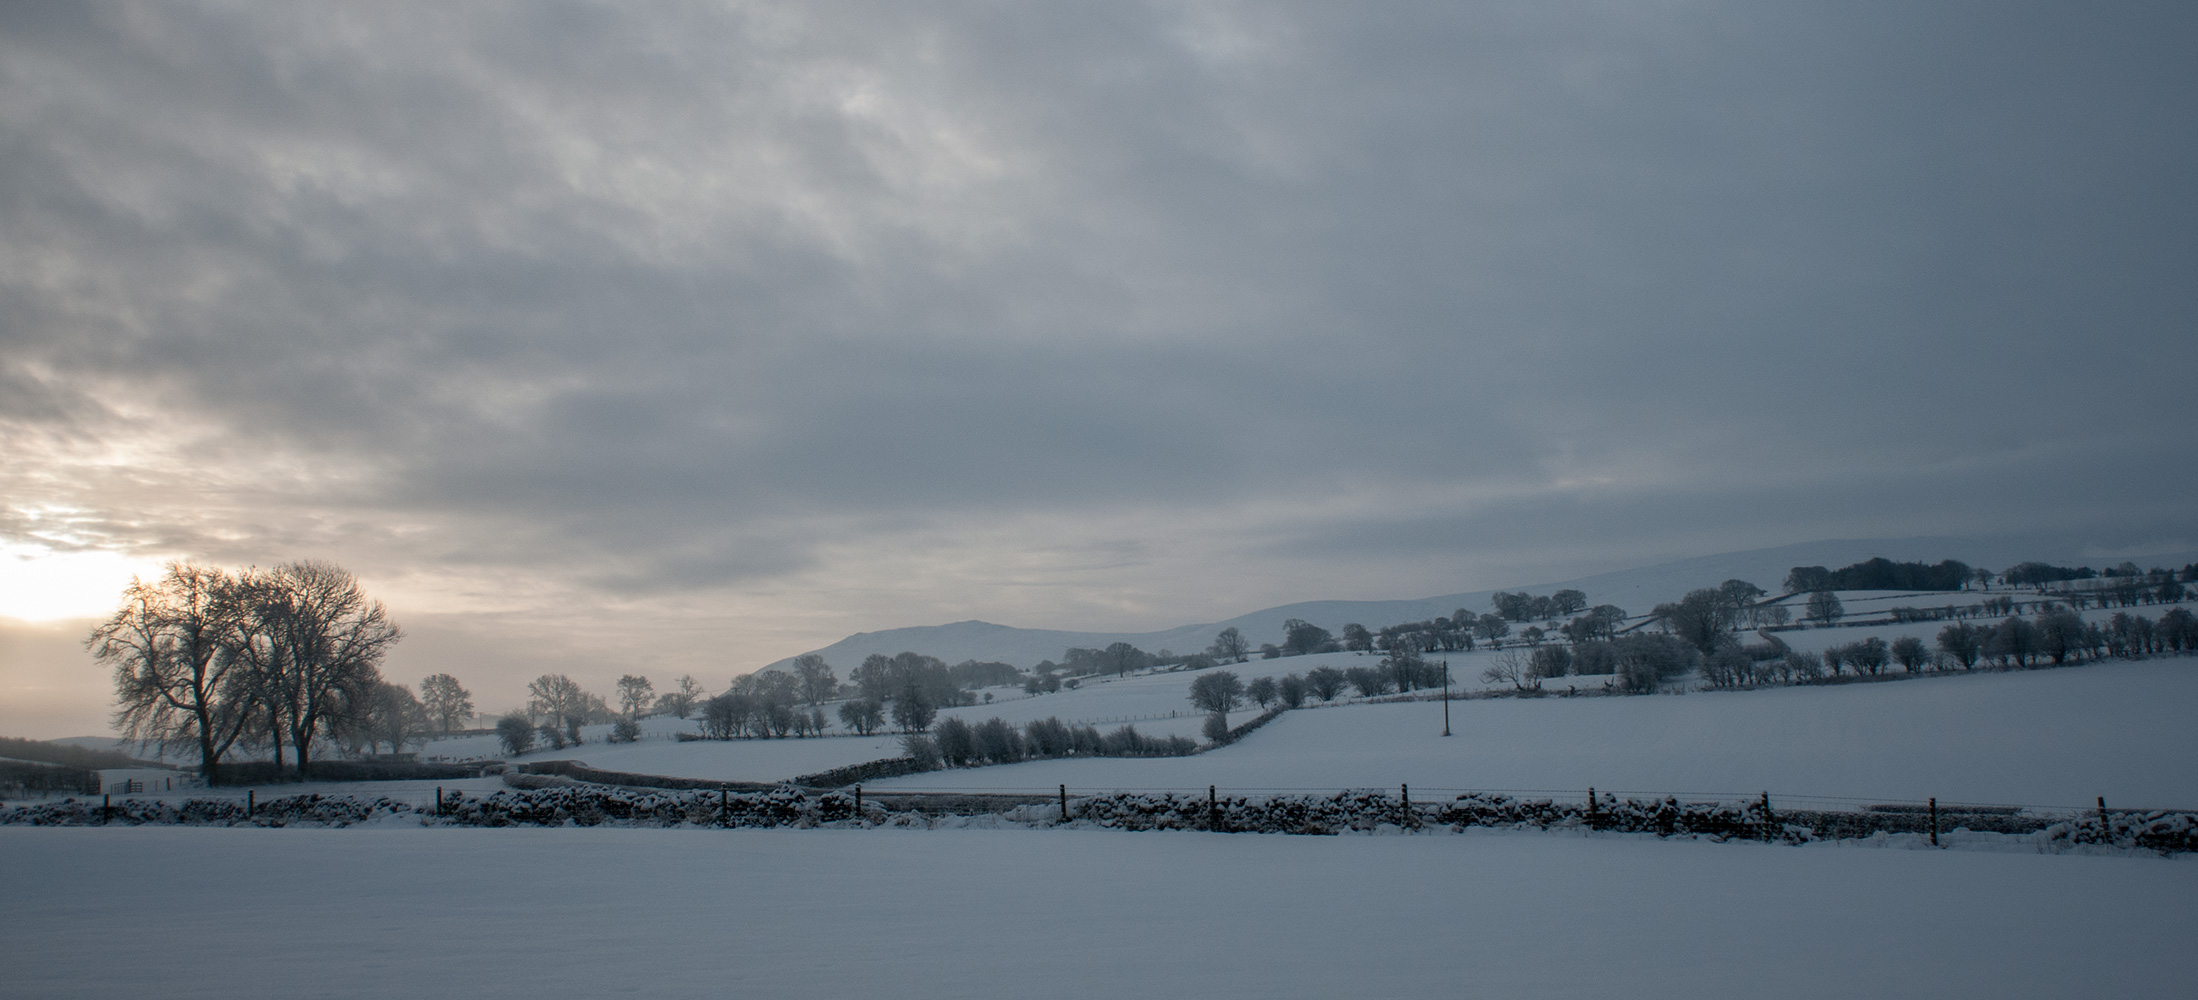 Carrock Fell & High Pike from the fields between Hesket Newmarket & Caldbeck in winter